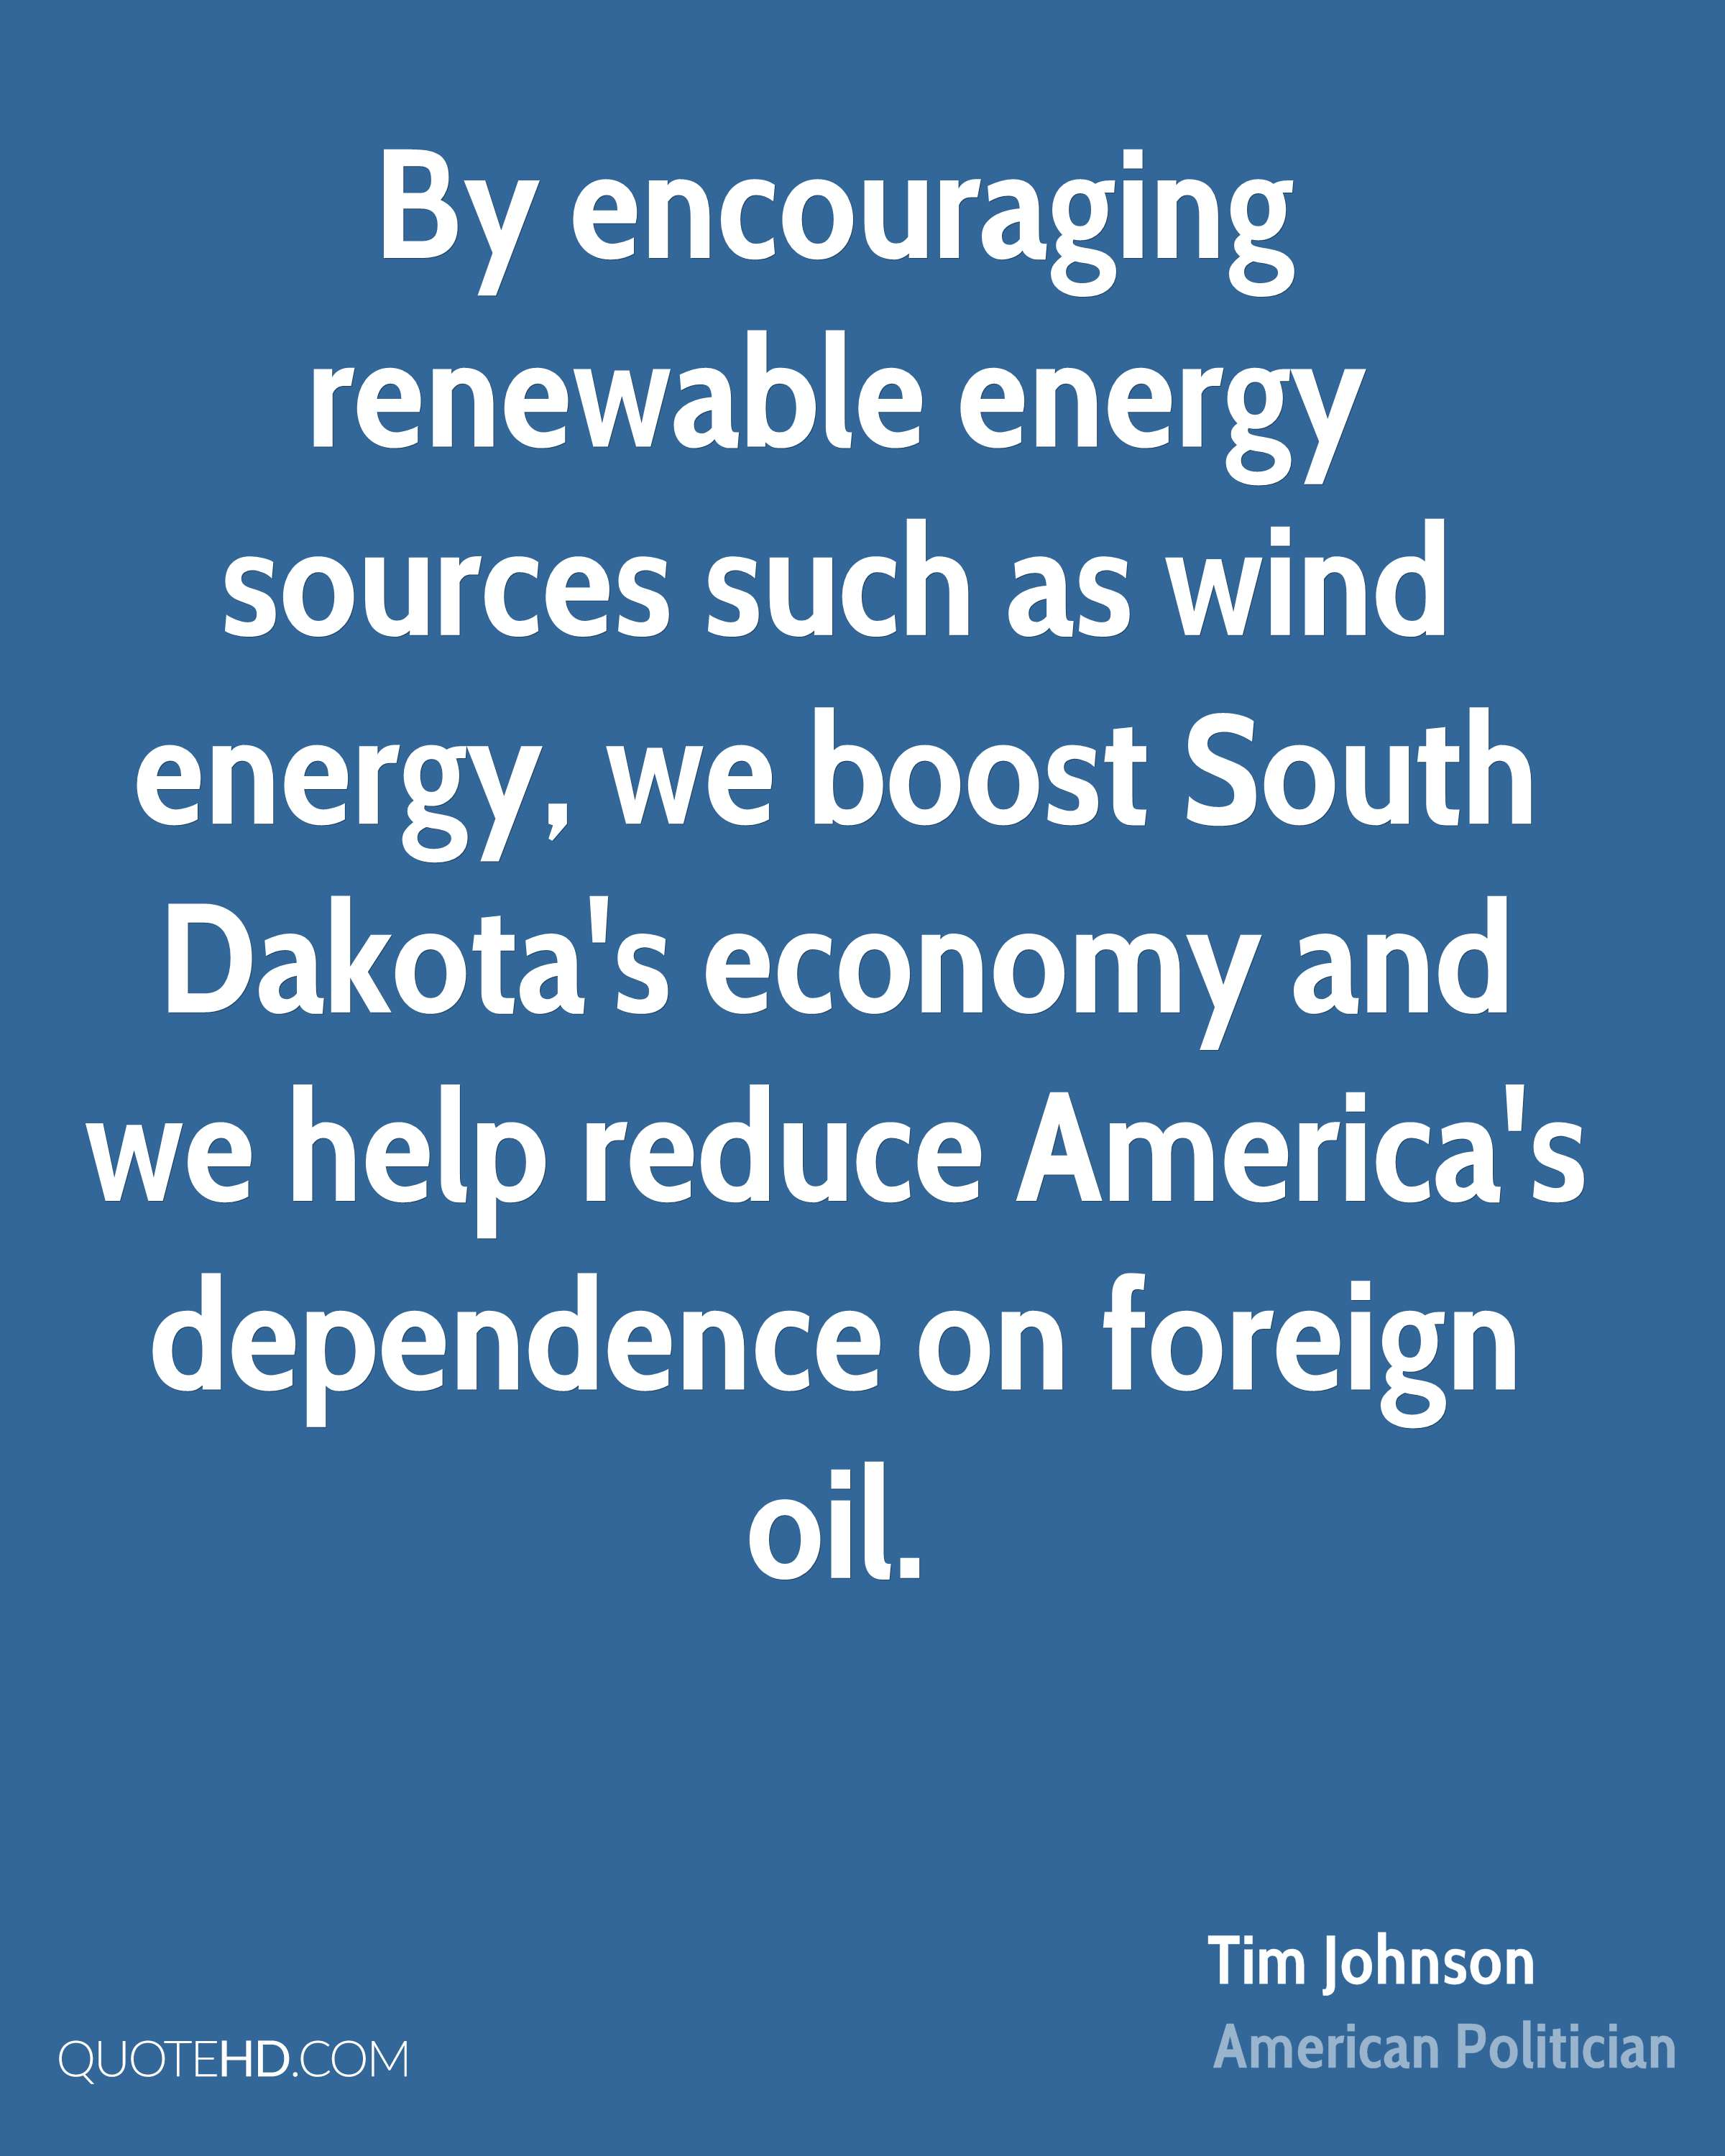 By encouraging renewable energy sources such as wind energy, we boost South Dakota's economy and we help reduce America's dependence on foreign oil.